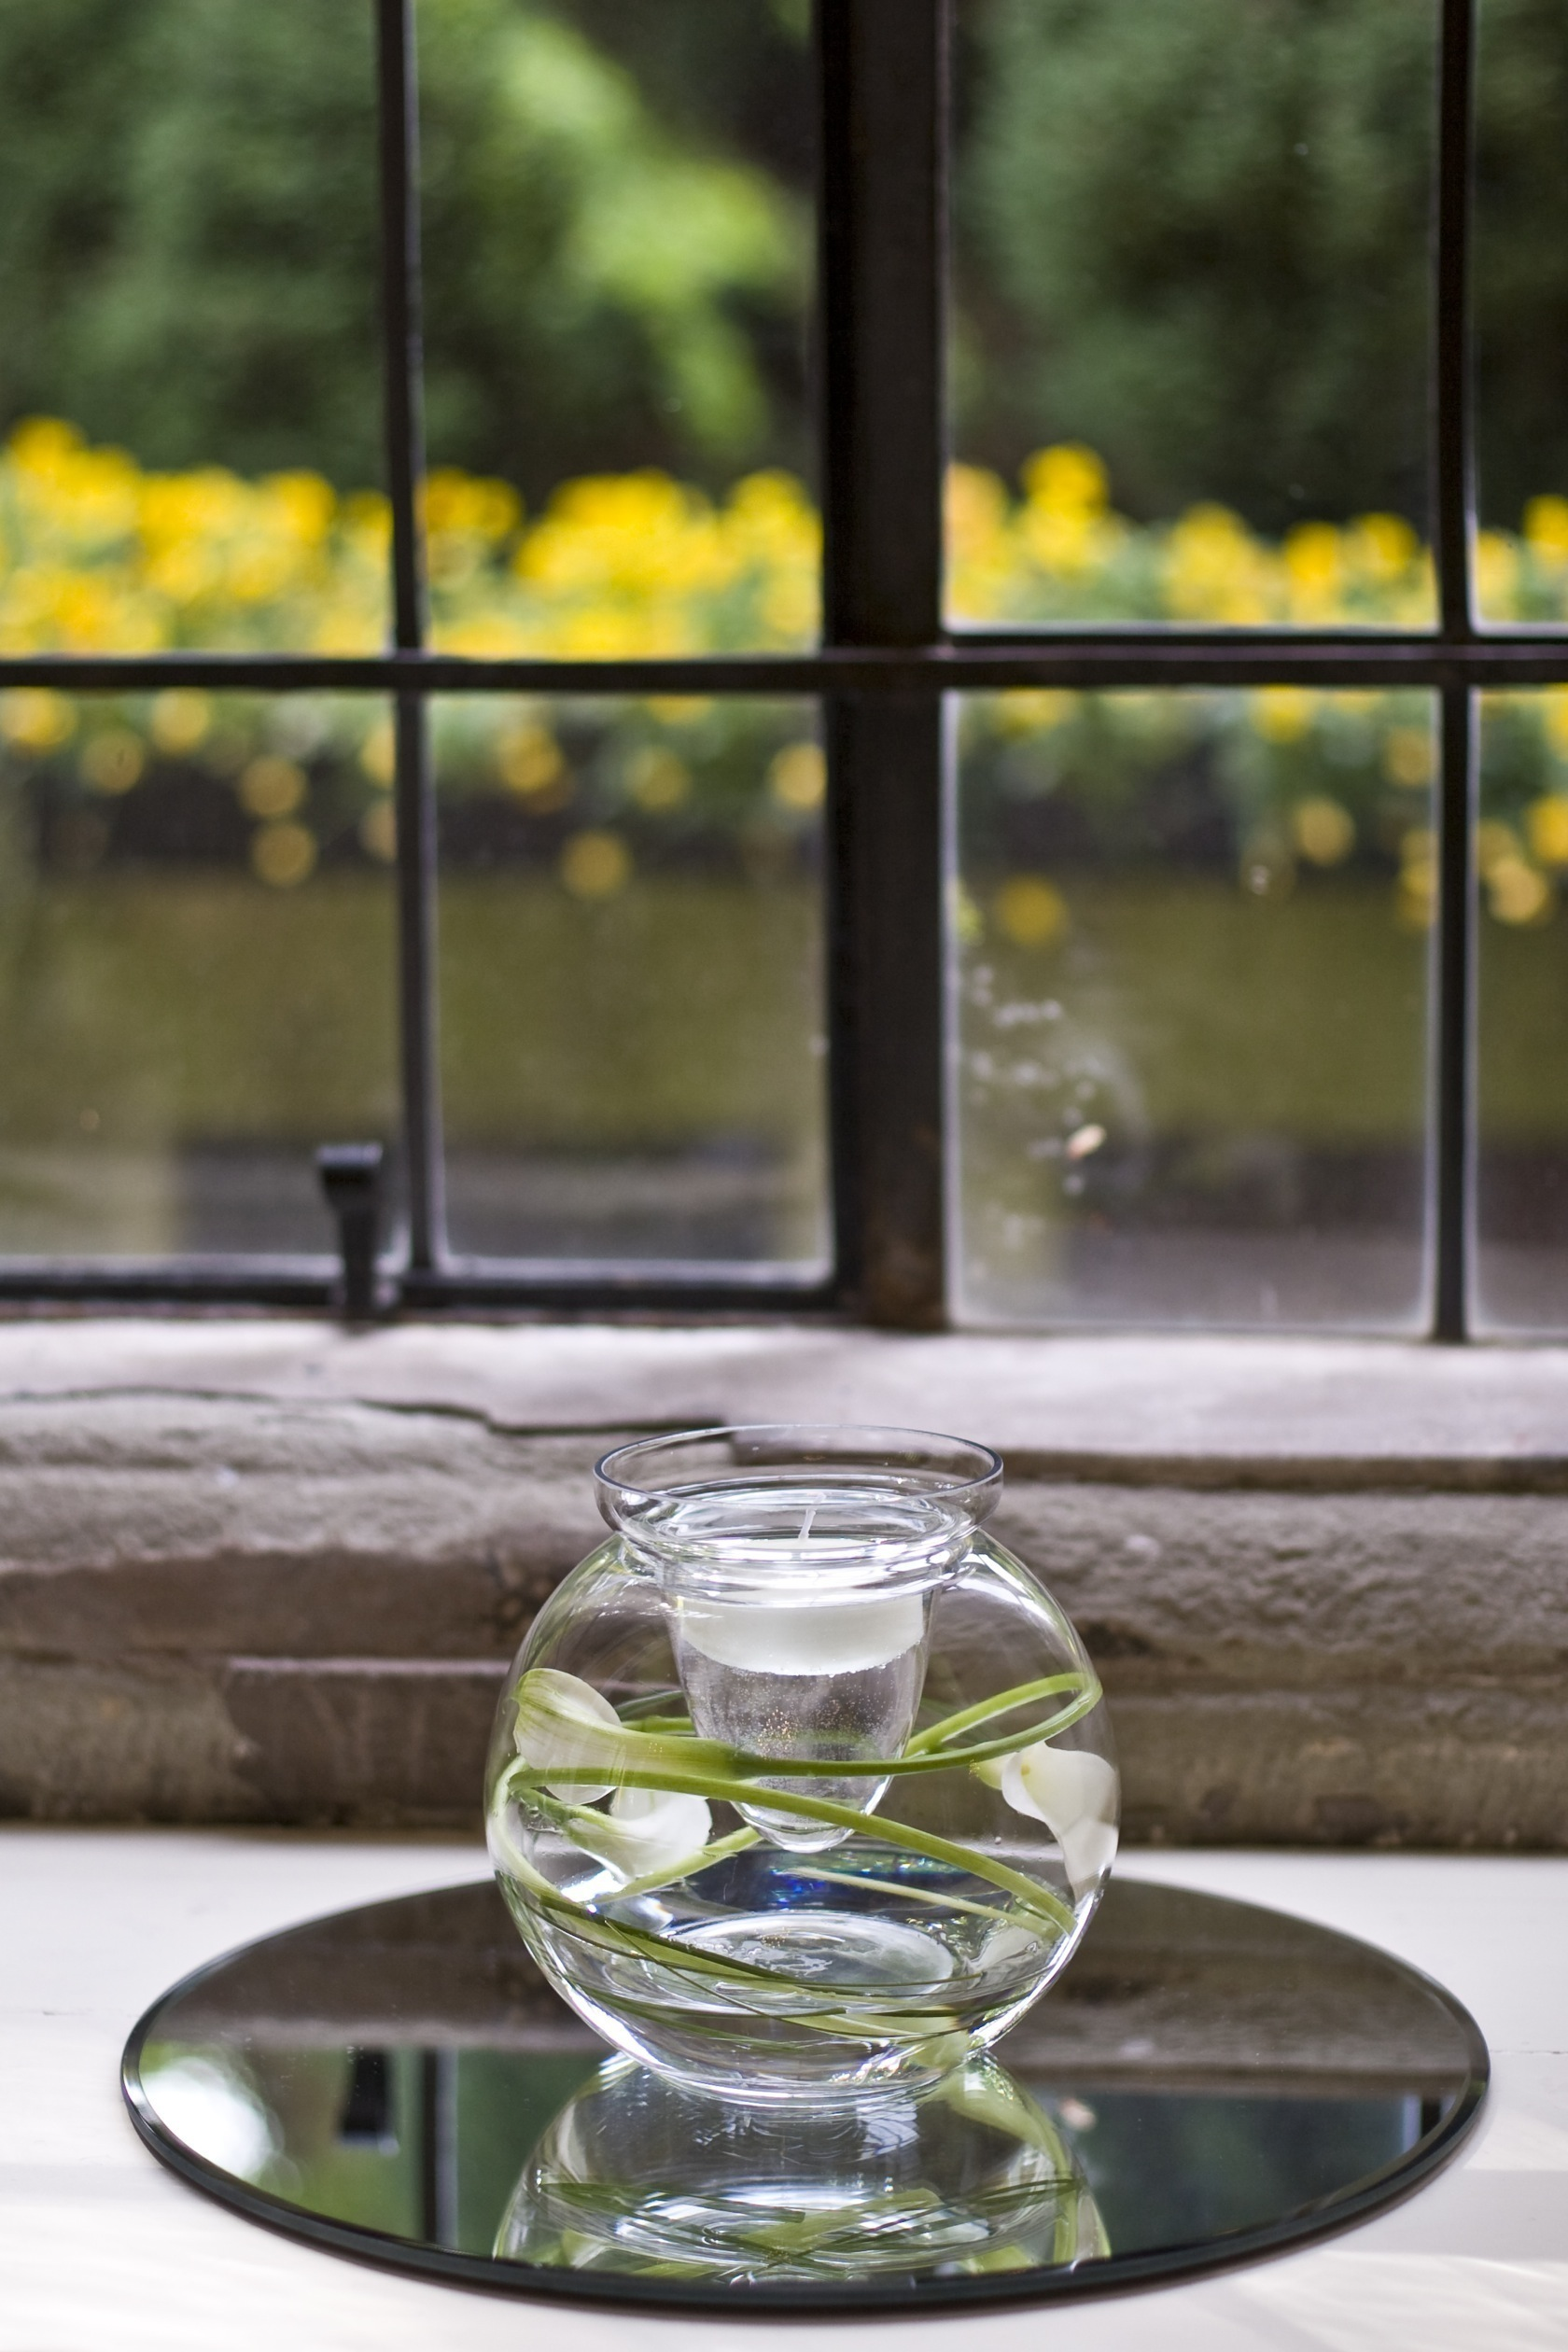 Calla Lily in Fishbowl Table Centre